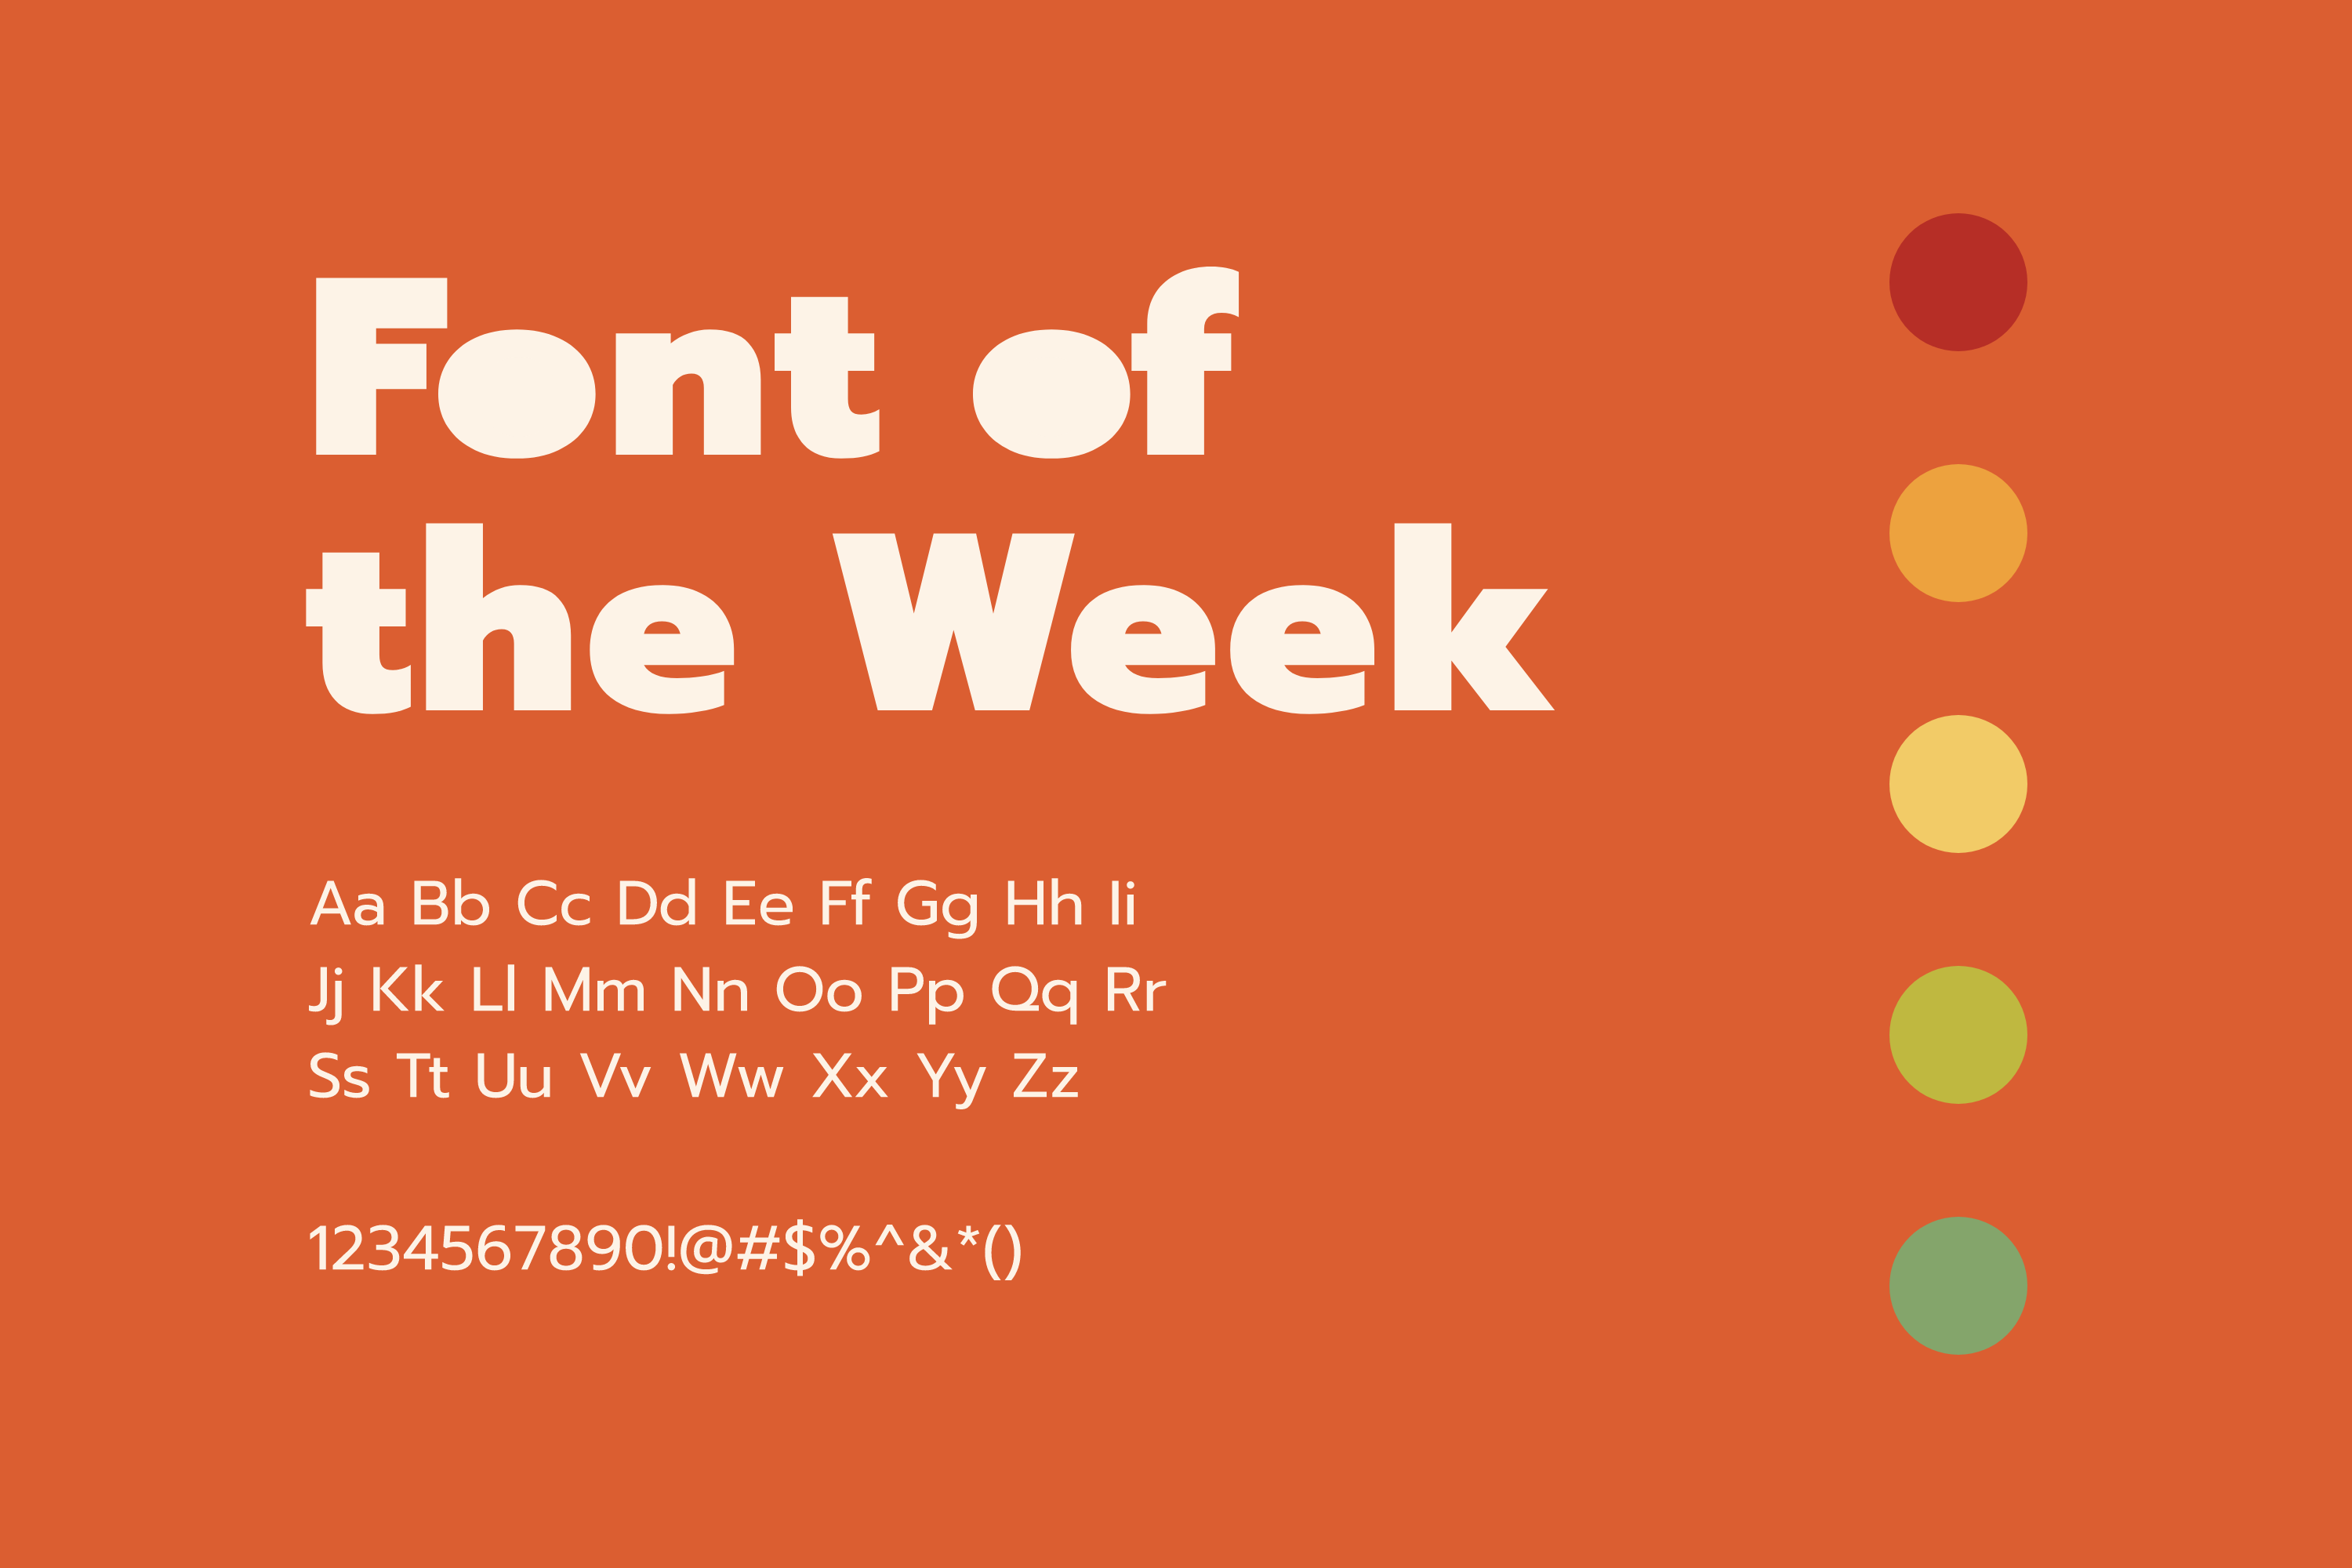 Font of the Week